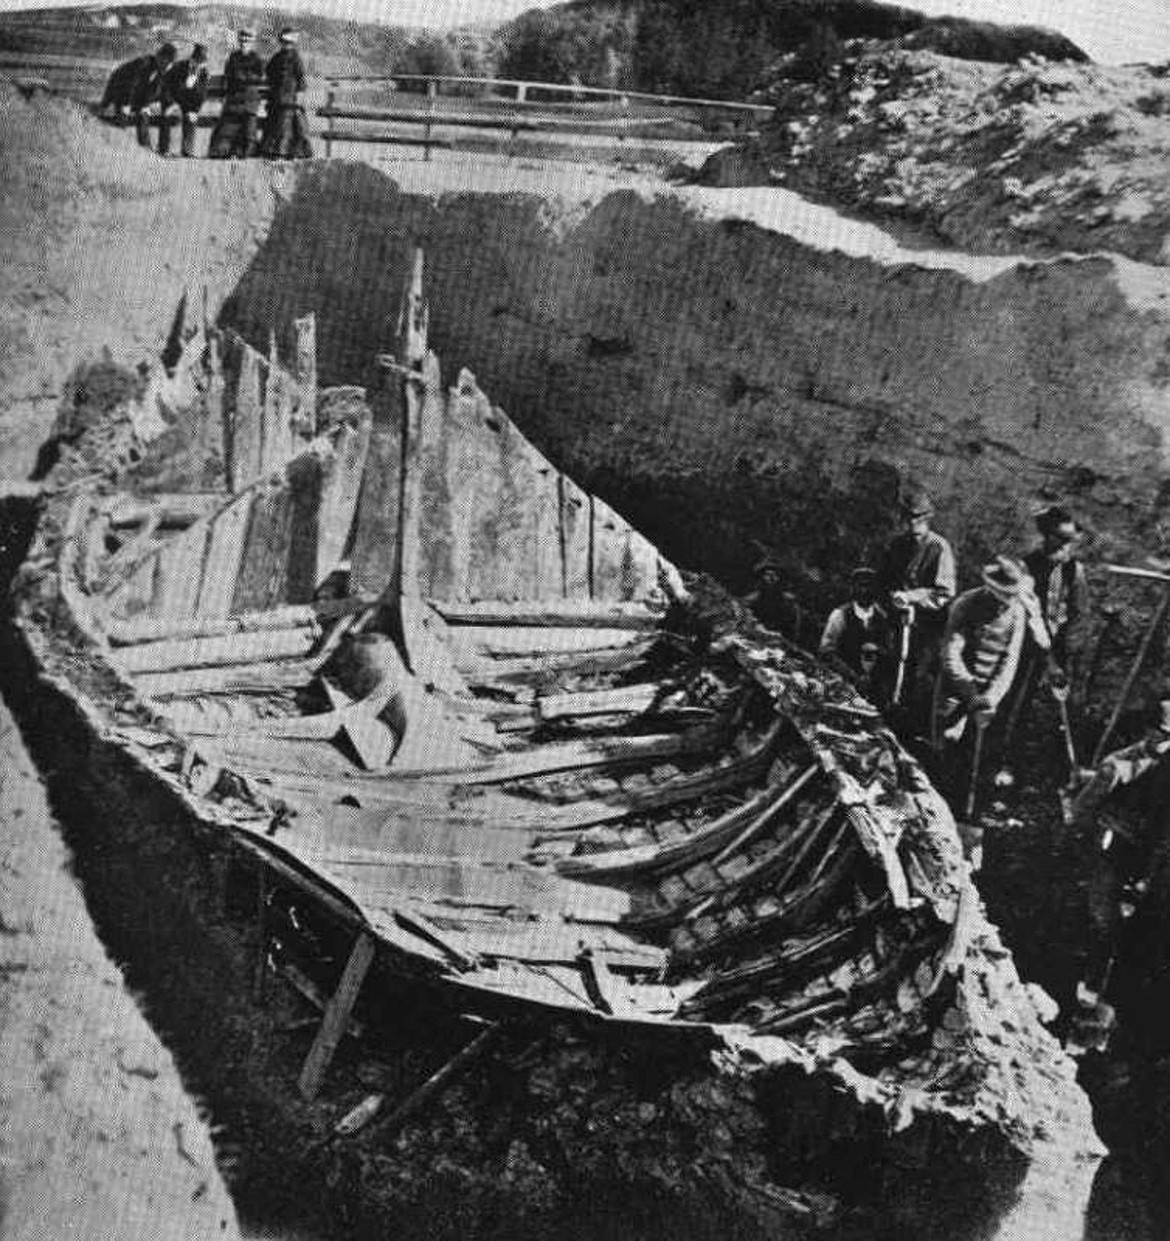 The 78-foot long Gokstad Viking ship was discovered buried on a farm near Oslo in 1880, apparently a funerary ship, with remains of a middle-aged man in the hull, surrounded by remains of two peacocks, two goshawks, eight dogs and 12 horses (photo c.1880).